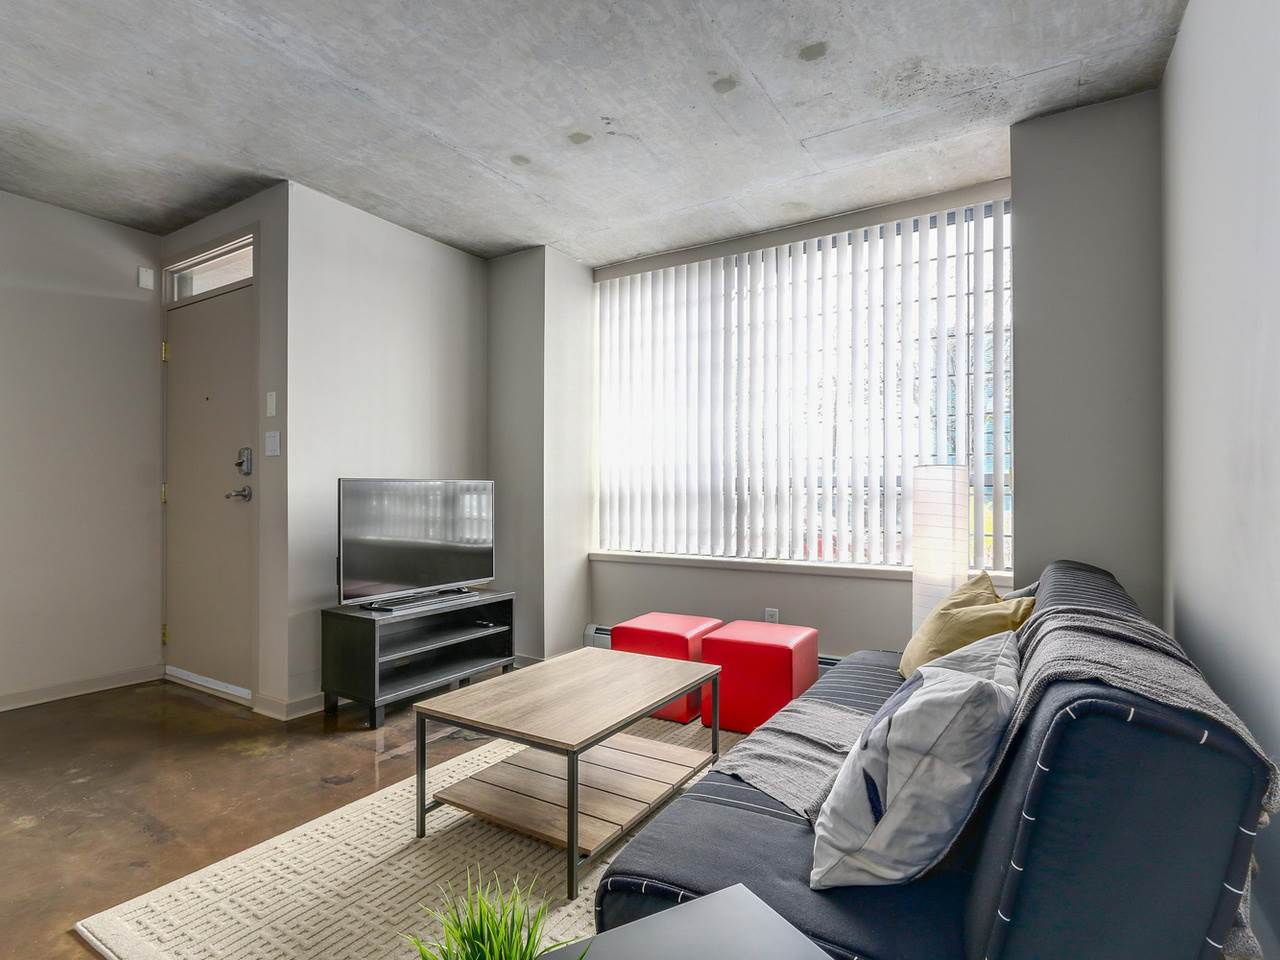 Condo Apartment at 905 STATION STREET, Vancouver East, British Columbia. Image 2